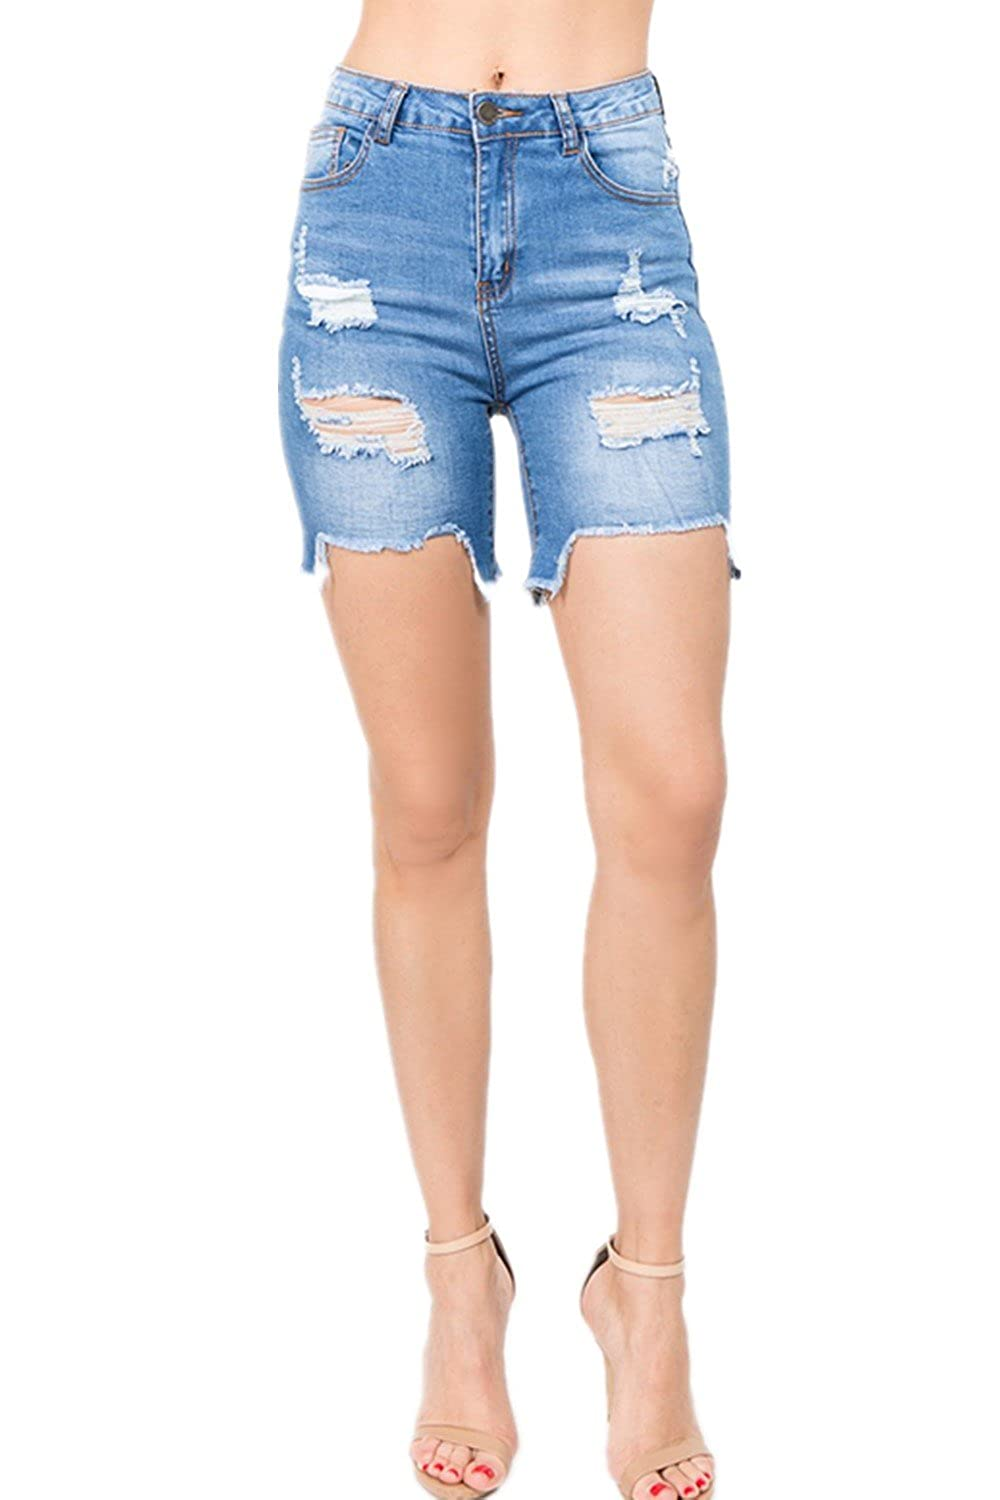 Jeans Sincere Ripped Hole Fringe Denim Shorts Women Casual Pocket Jeans Shorts 2019 Summer Female Wide Leg Hot Shorts Button Attractive Designs; Bottoms